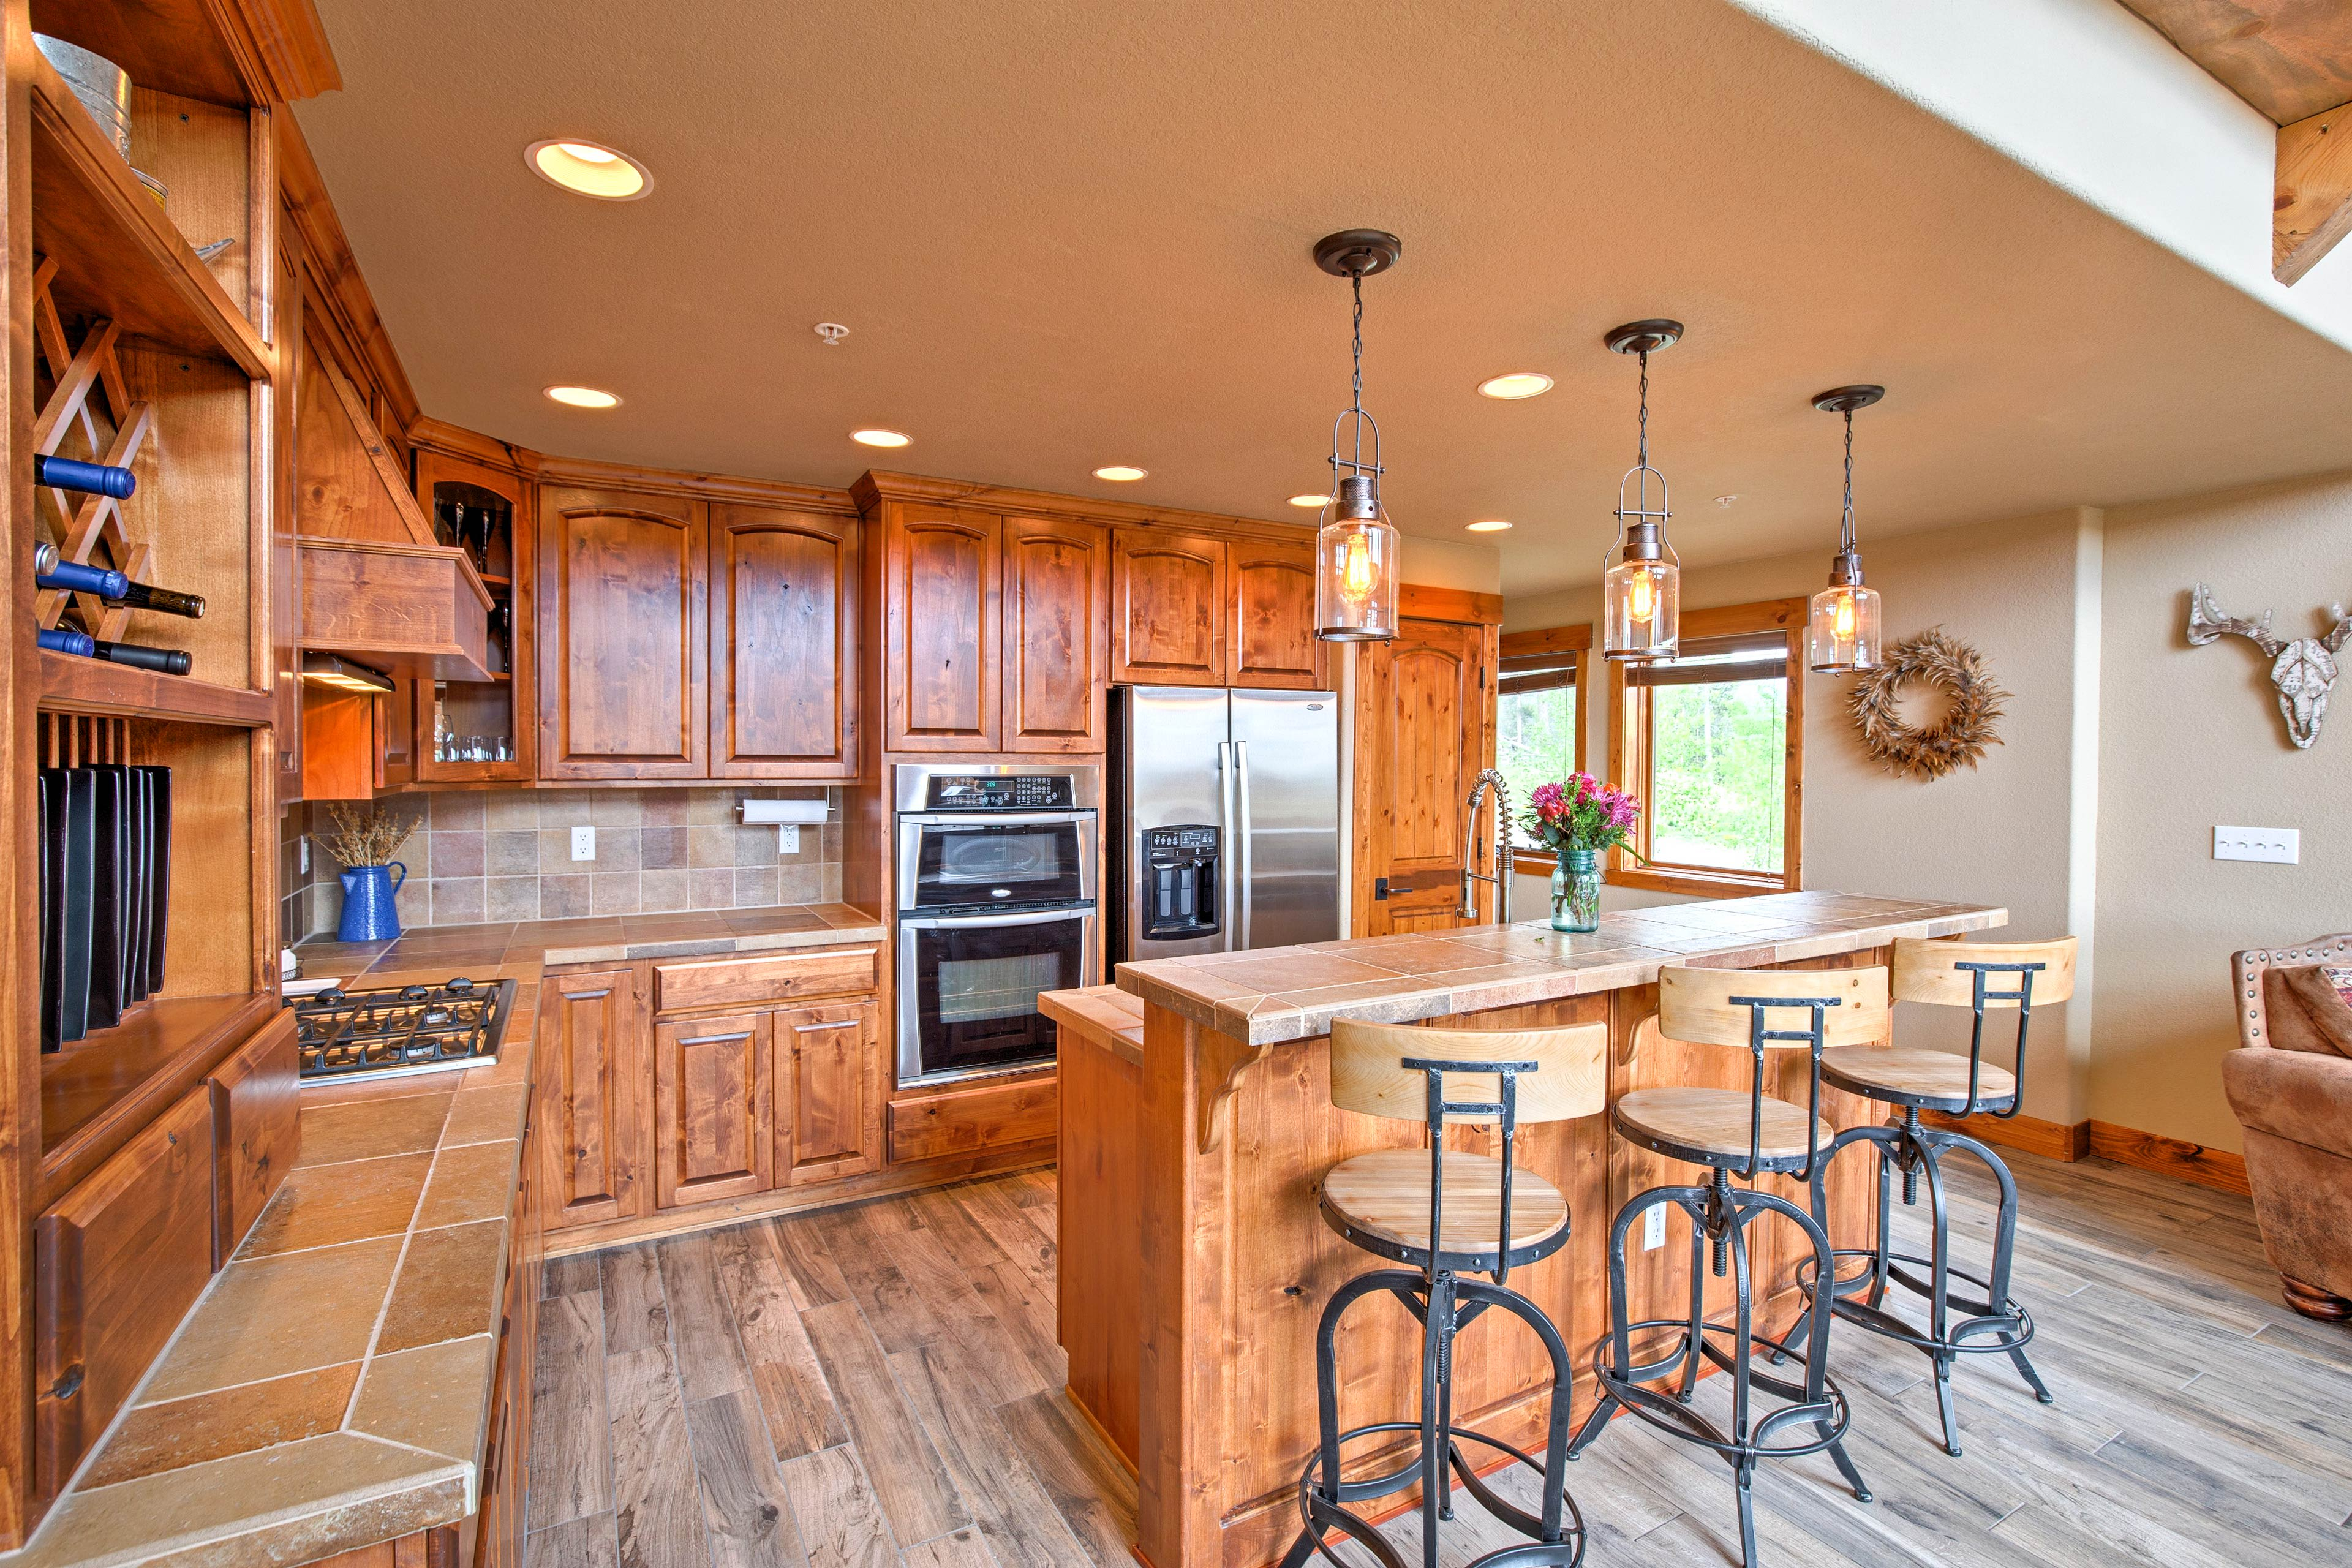 Prepare feasts in the fully equipped, well-stocked kitchen.